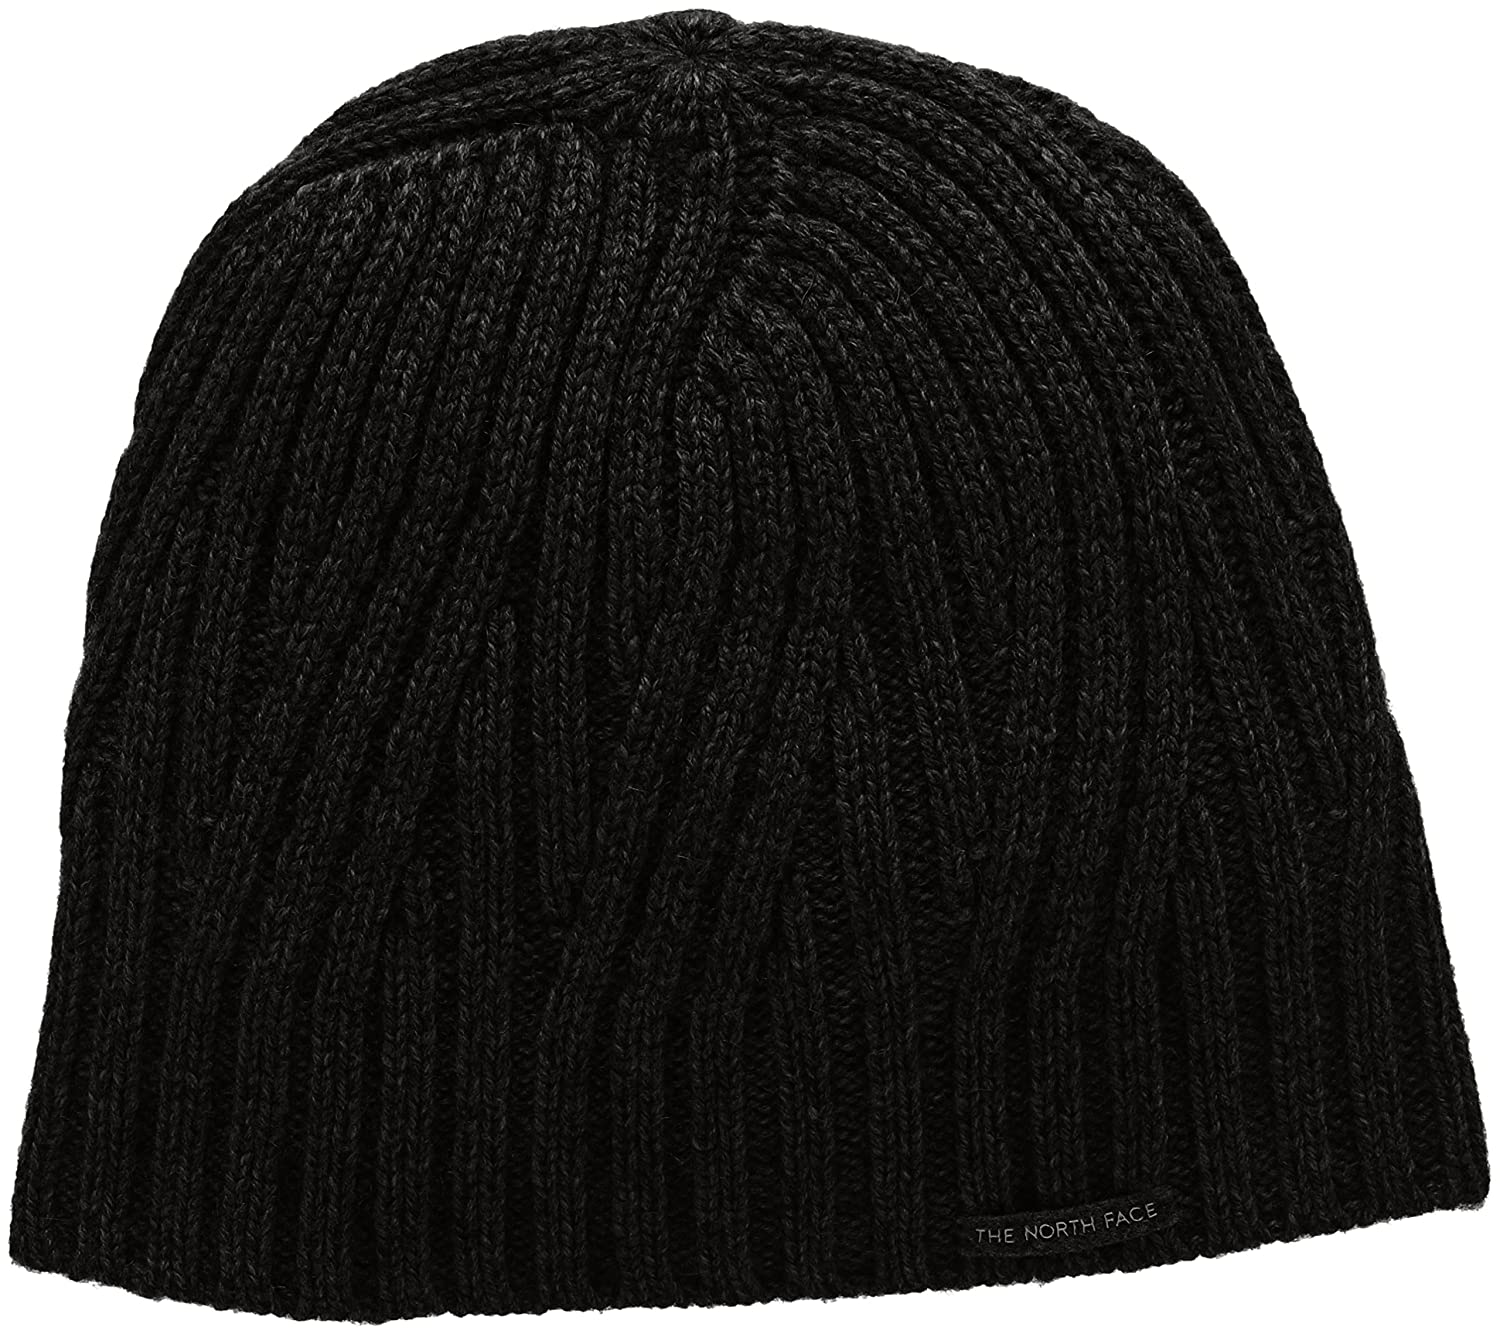 THE NORTH FACE Unisex Mütze M Classic Wool Beanie